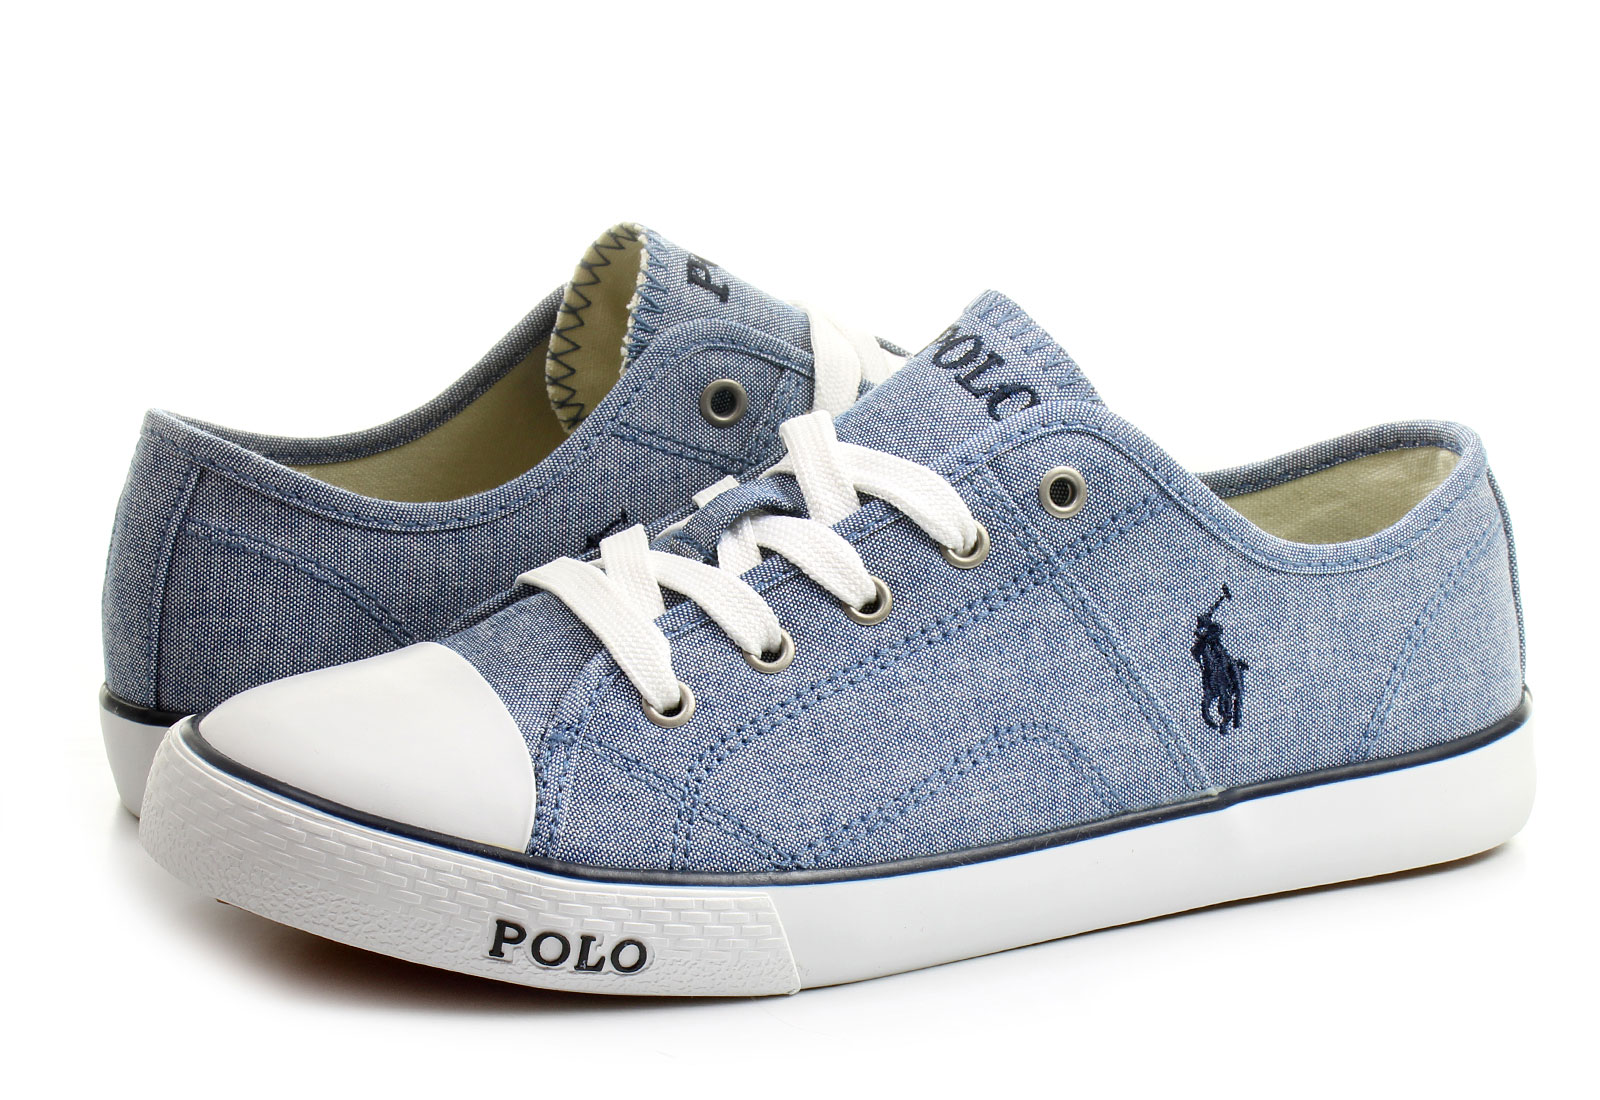 Grey And White Polo Shoes